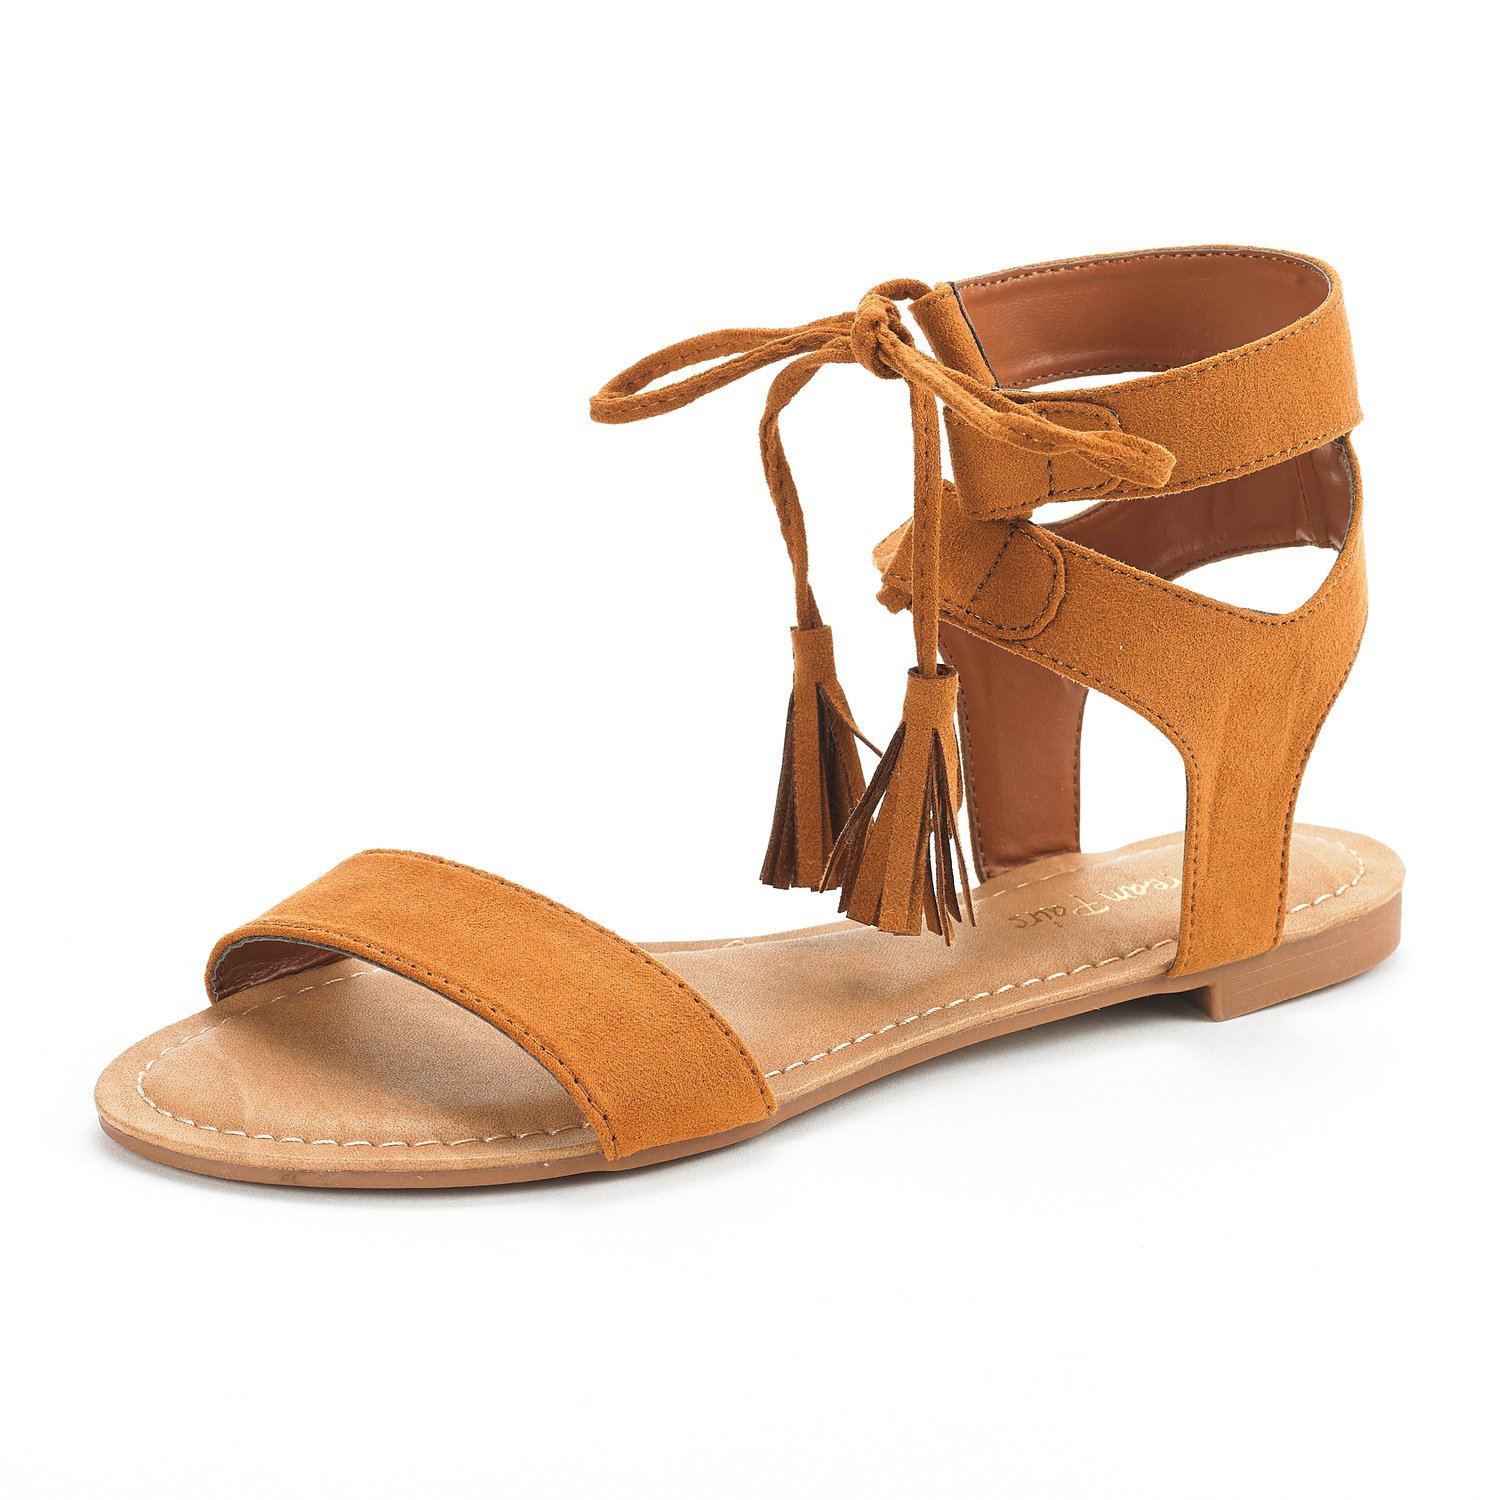 DREAM PAIRS Women's Bowtie Tan Ankle Strap Gladiator Flat Sandals Size 9 M US